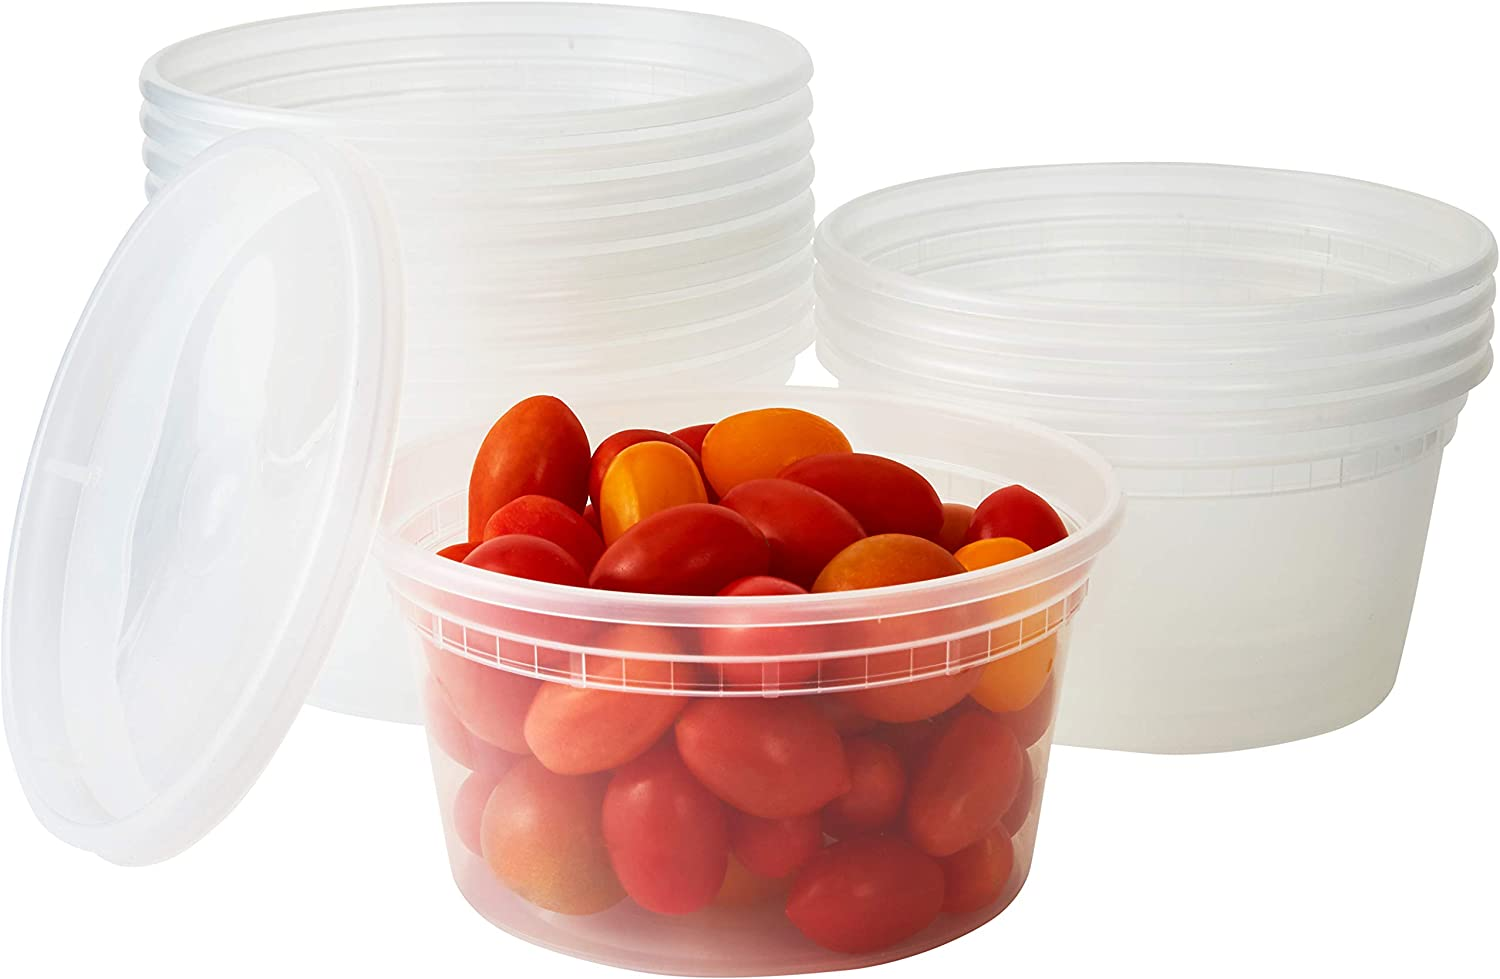 Deli Grade, BPA Free 12oz Plastic Containers with Lids, 24ct. Leakproof, Microwavable Portion Container for To-Go Orders, Food Prep and Storage. Reusable Takeout Cups for Restaurant, Cafe and Catering